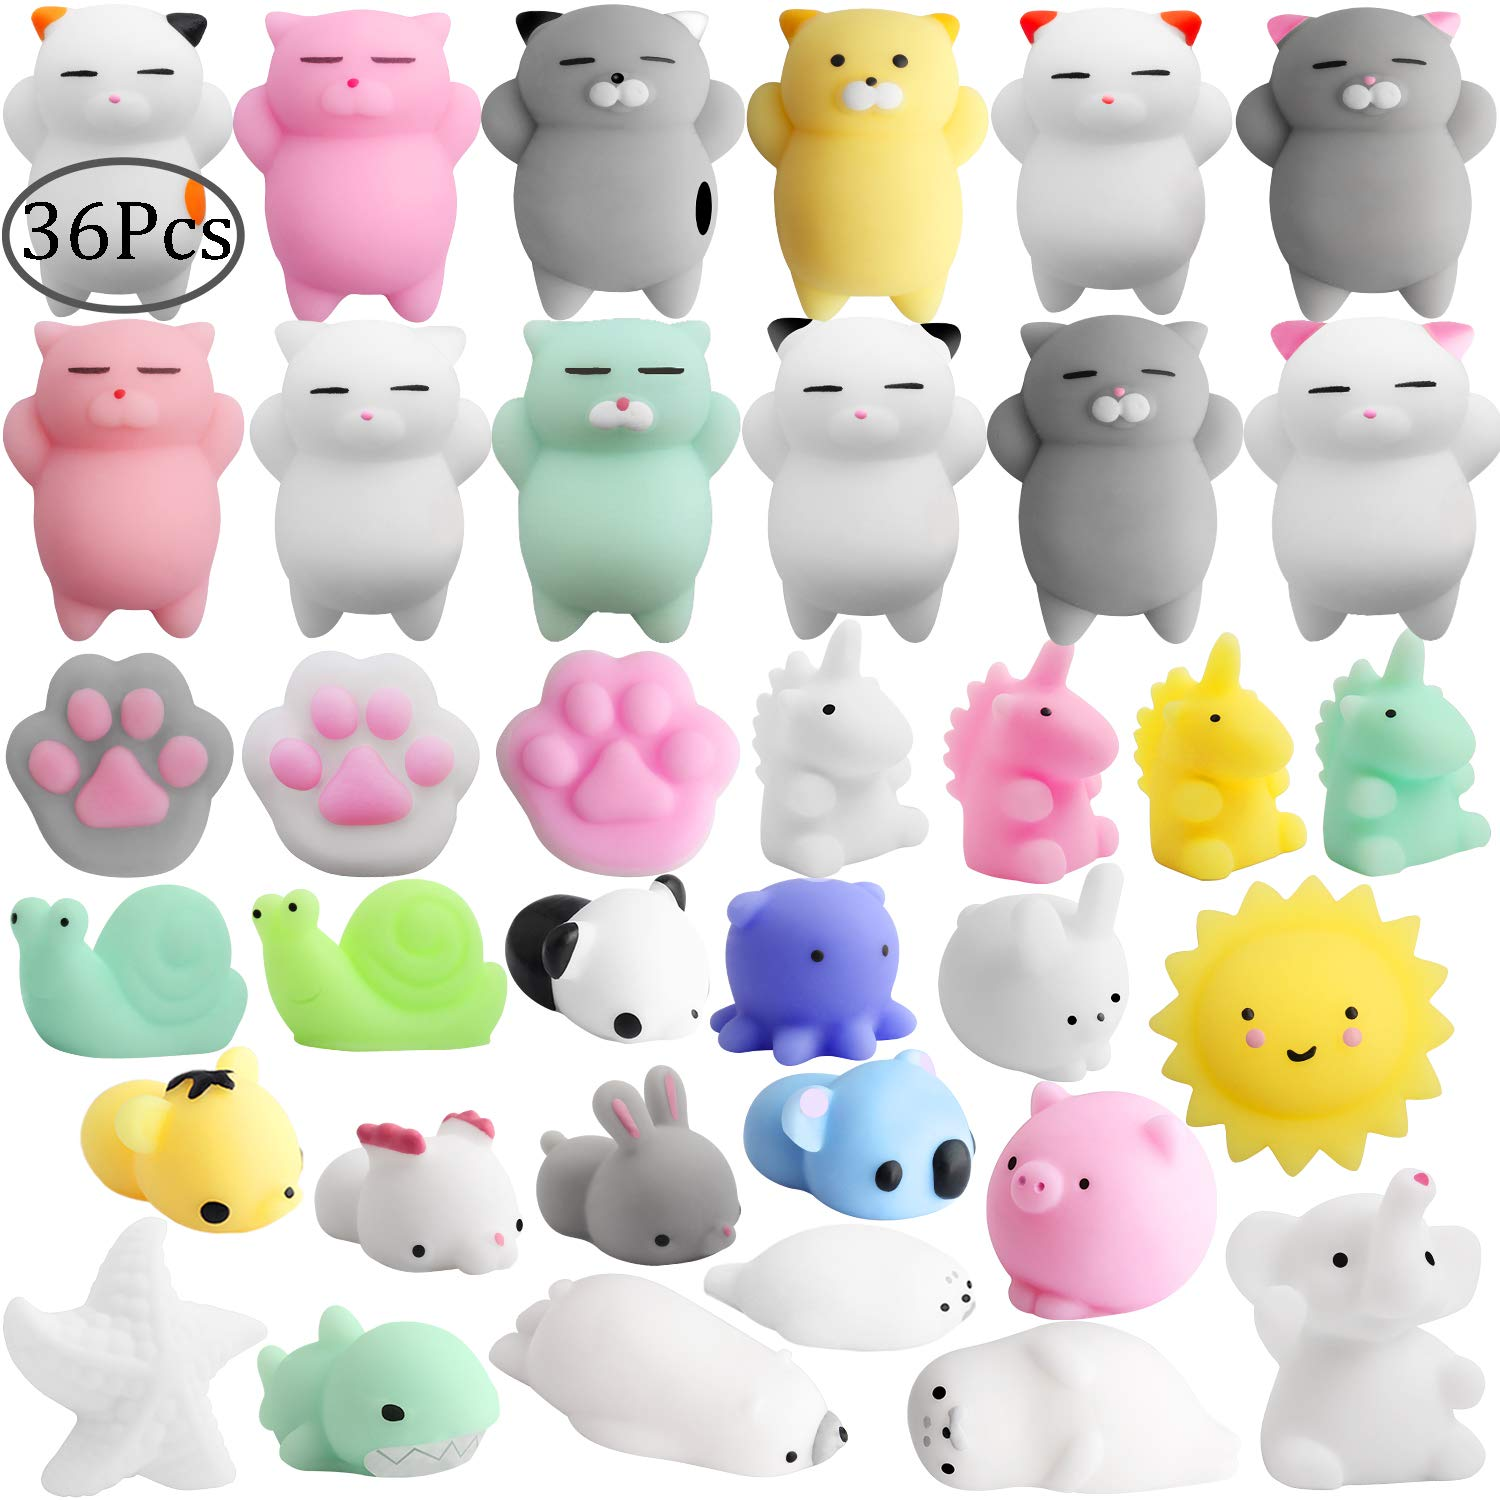 Outee Mochi Squeeze Cat Toys, 36 Pcs Mini Mochi Squishies Mochi Animal Cat Squishies Mini Squishies Stress Relief Animals Squihsy Squeeze Stress Cat Toys Mochi Squeeze Squishies Random by Outee